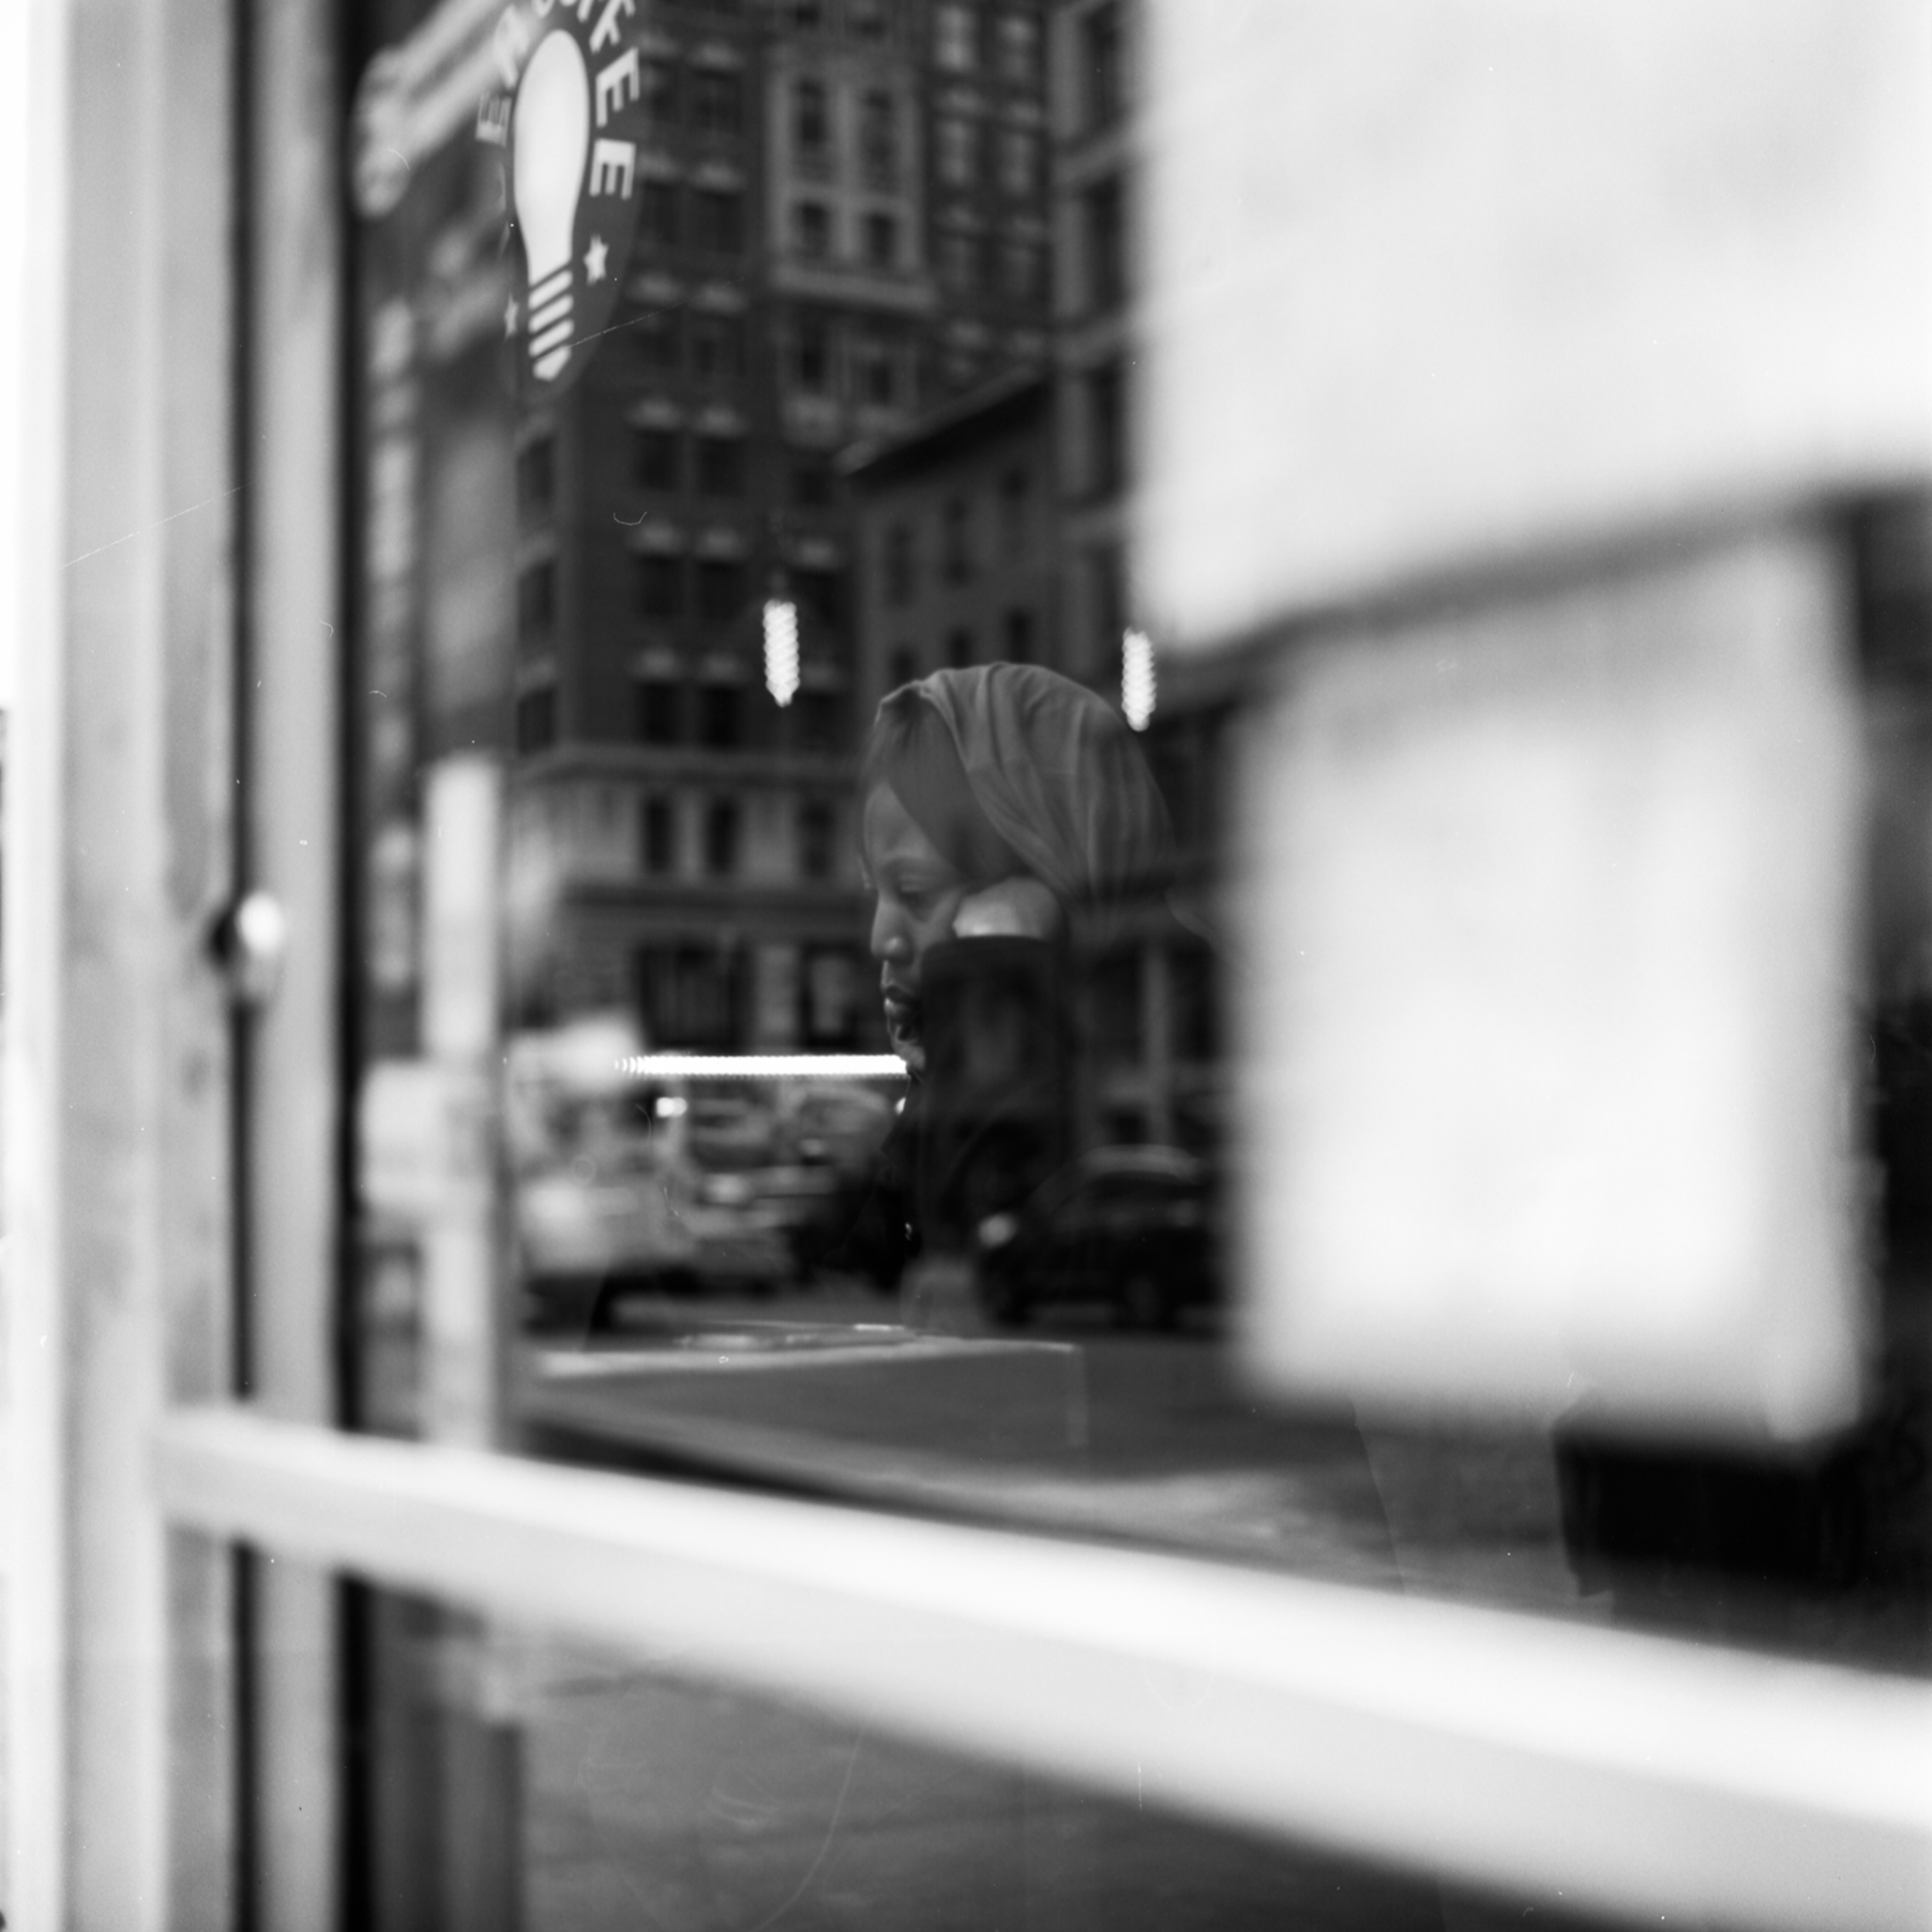 woman sitting in a coffee shop, photography of a woman in the window, old man sitting in a diner, michelle viljoen, photography, street photography, new york, new york street photography, reflection photography,michelle viljoen, street photography, new york city, photography, new york city, 120mm film, hasselblad 500